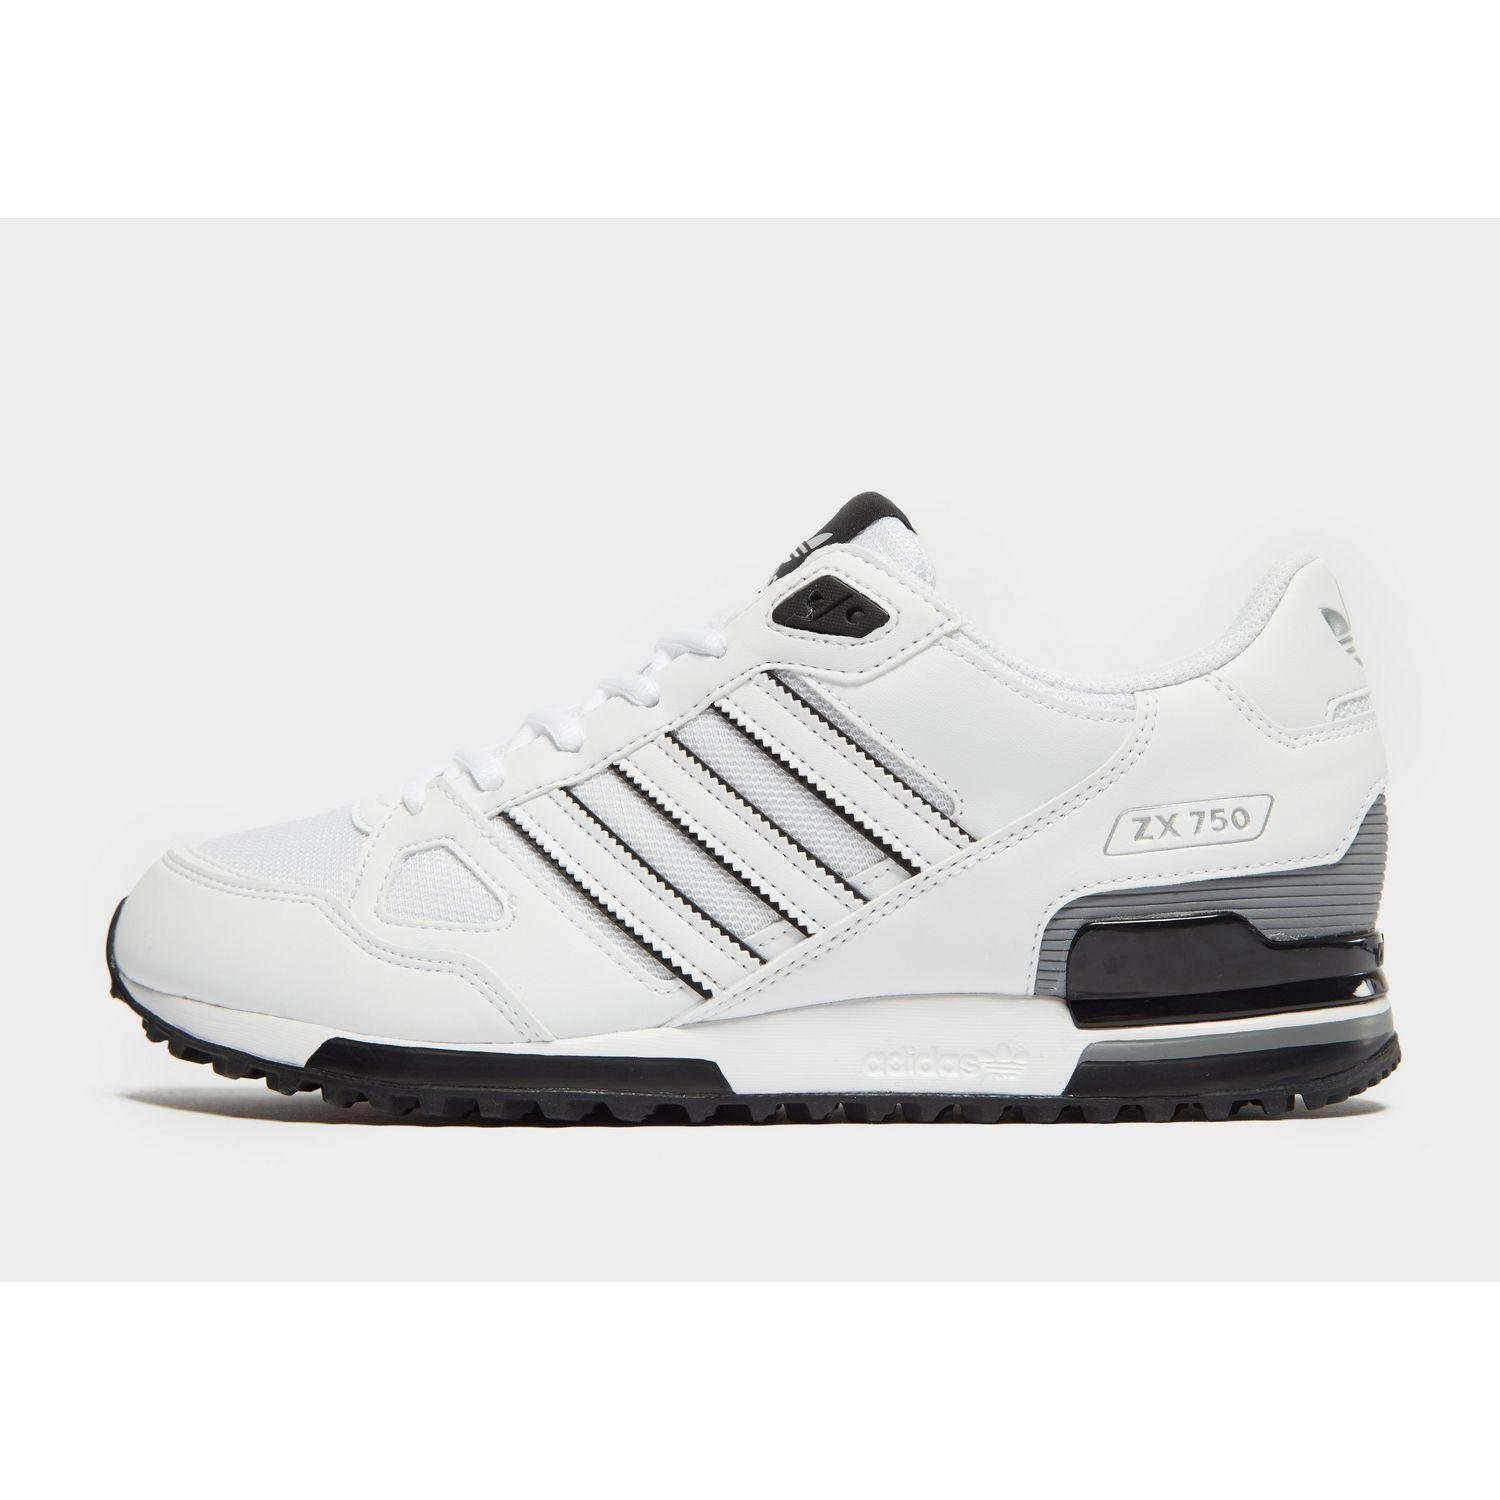 a5c8bd0ef2254 adidas Originals. Men s White Zx 750. £80 From JD Sports